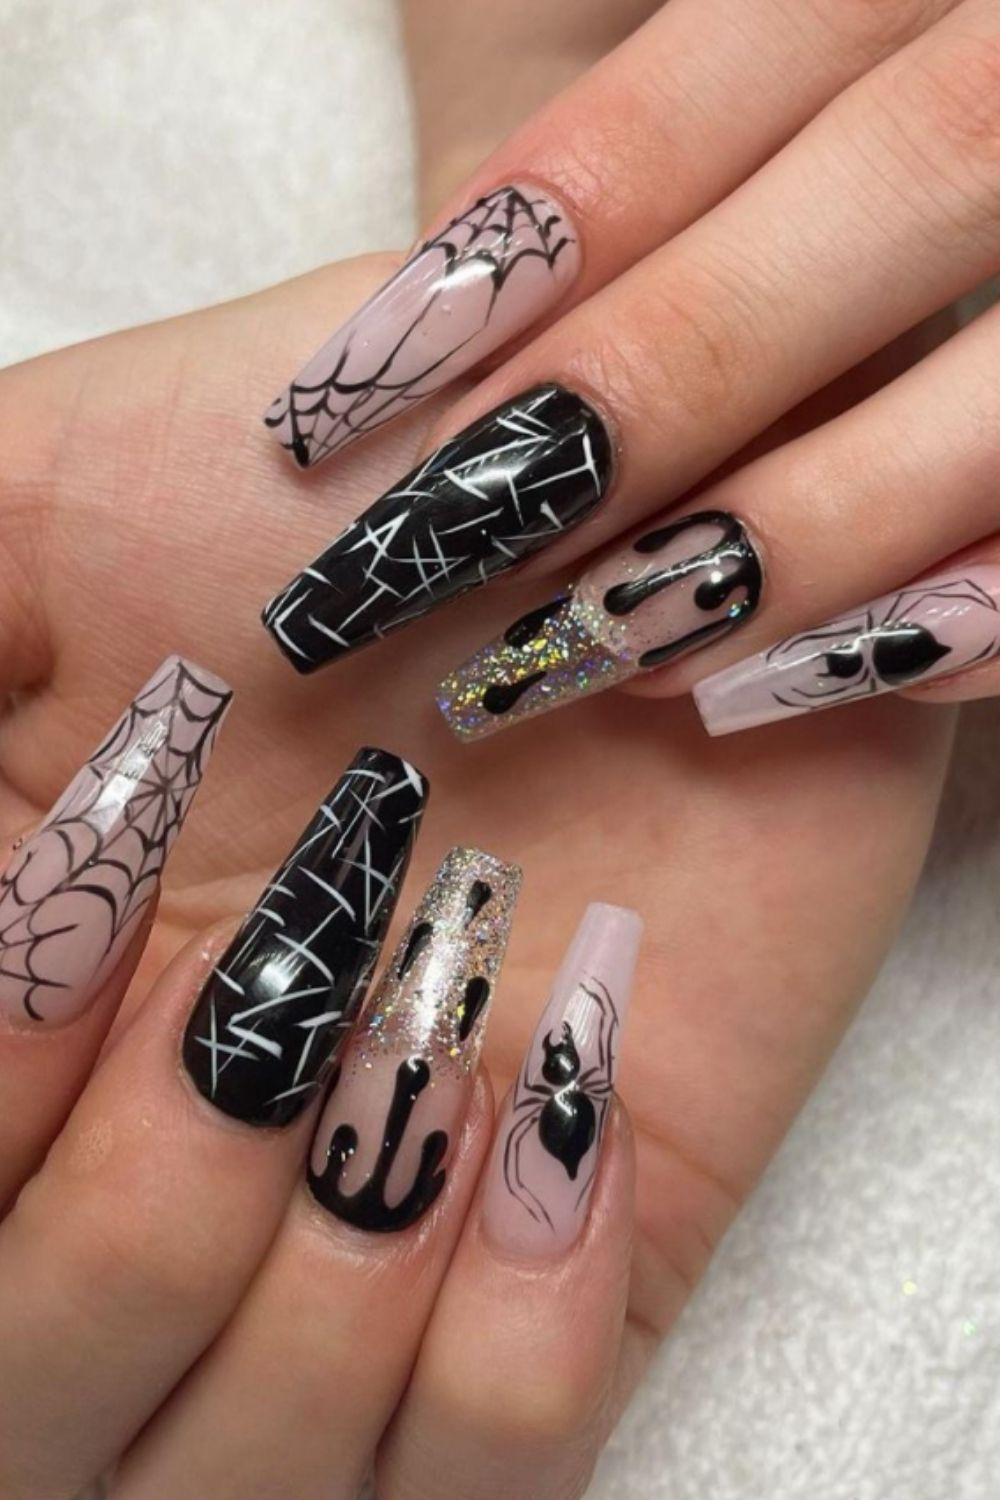 Black, Gray and White Nail Designs for Halloween